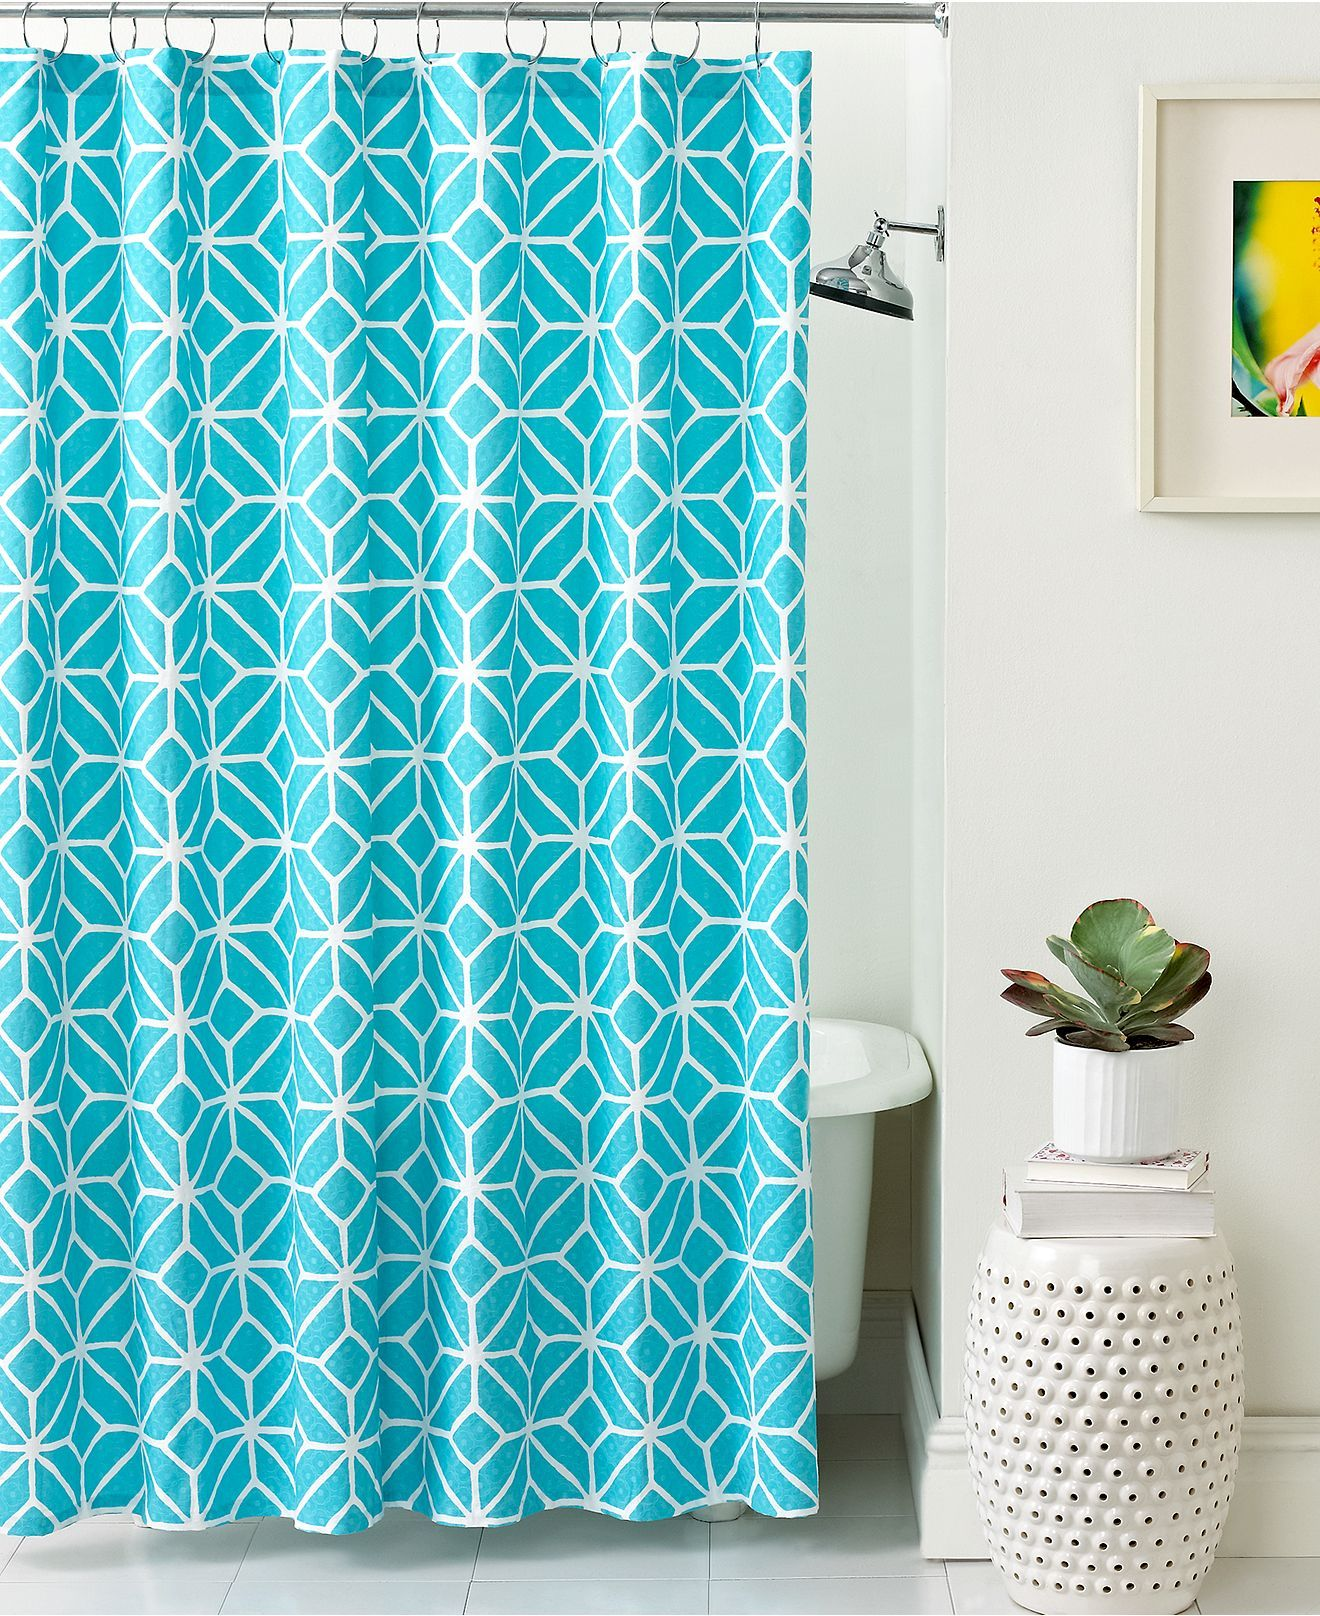 Trina Turk Bath, Trellis Shower Curtain - Shower Curtains ...